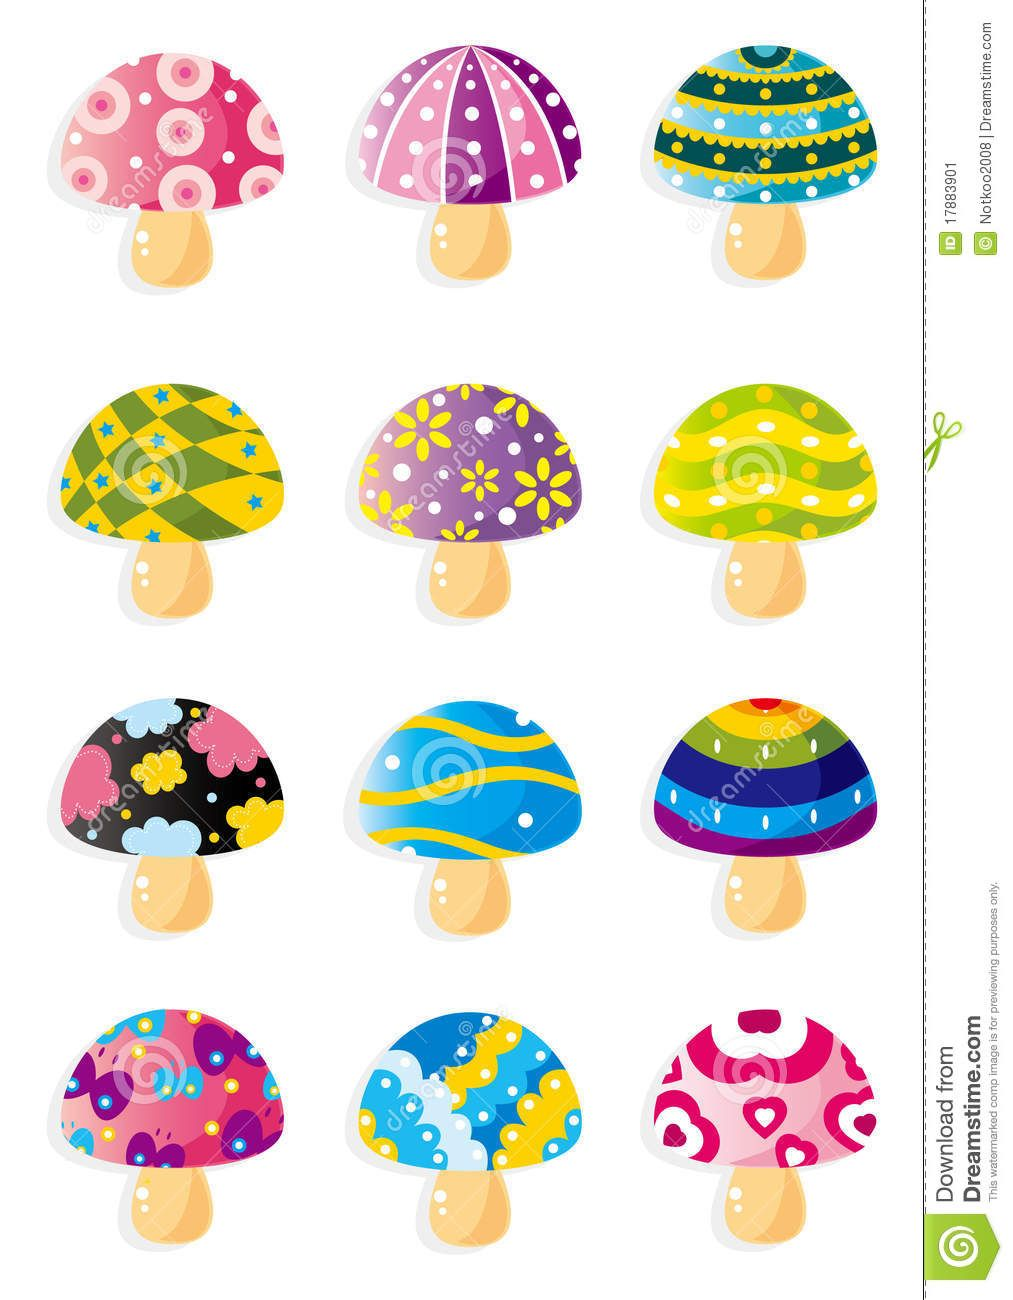 15 Best New Mushroom Drawing Color